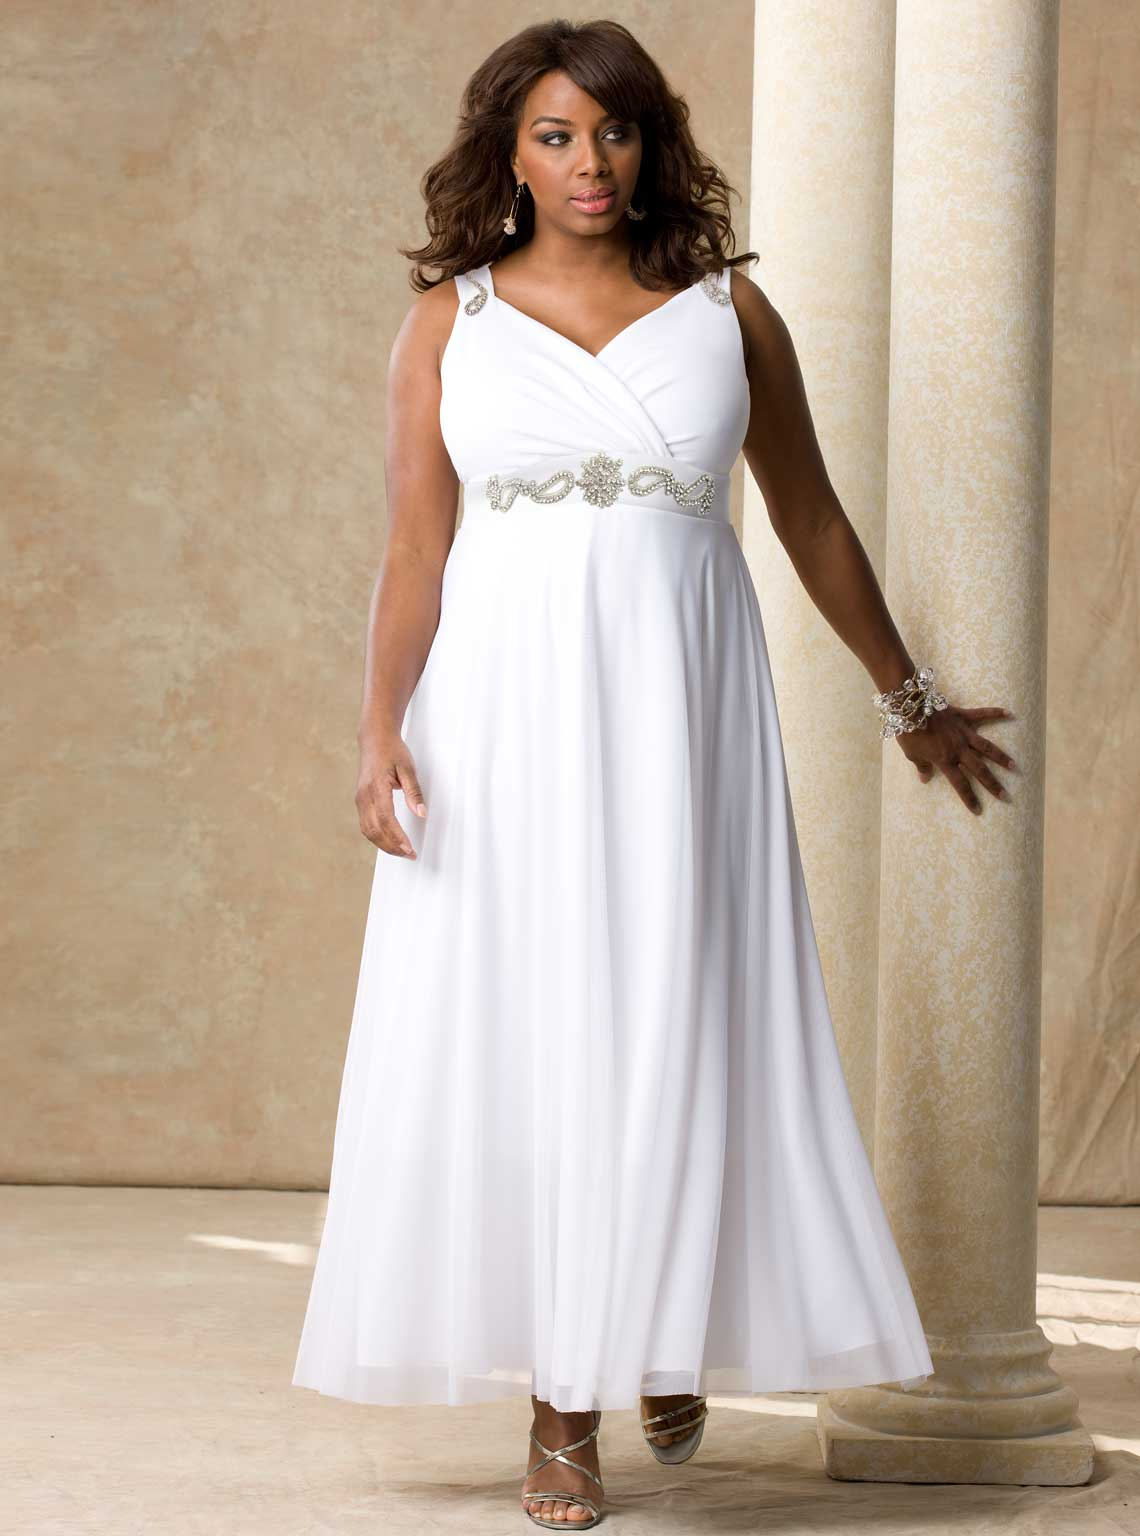 best wedding ideas searching for an affordable plus size With wedding gowns for plus size